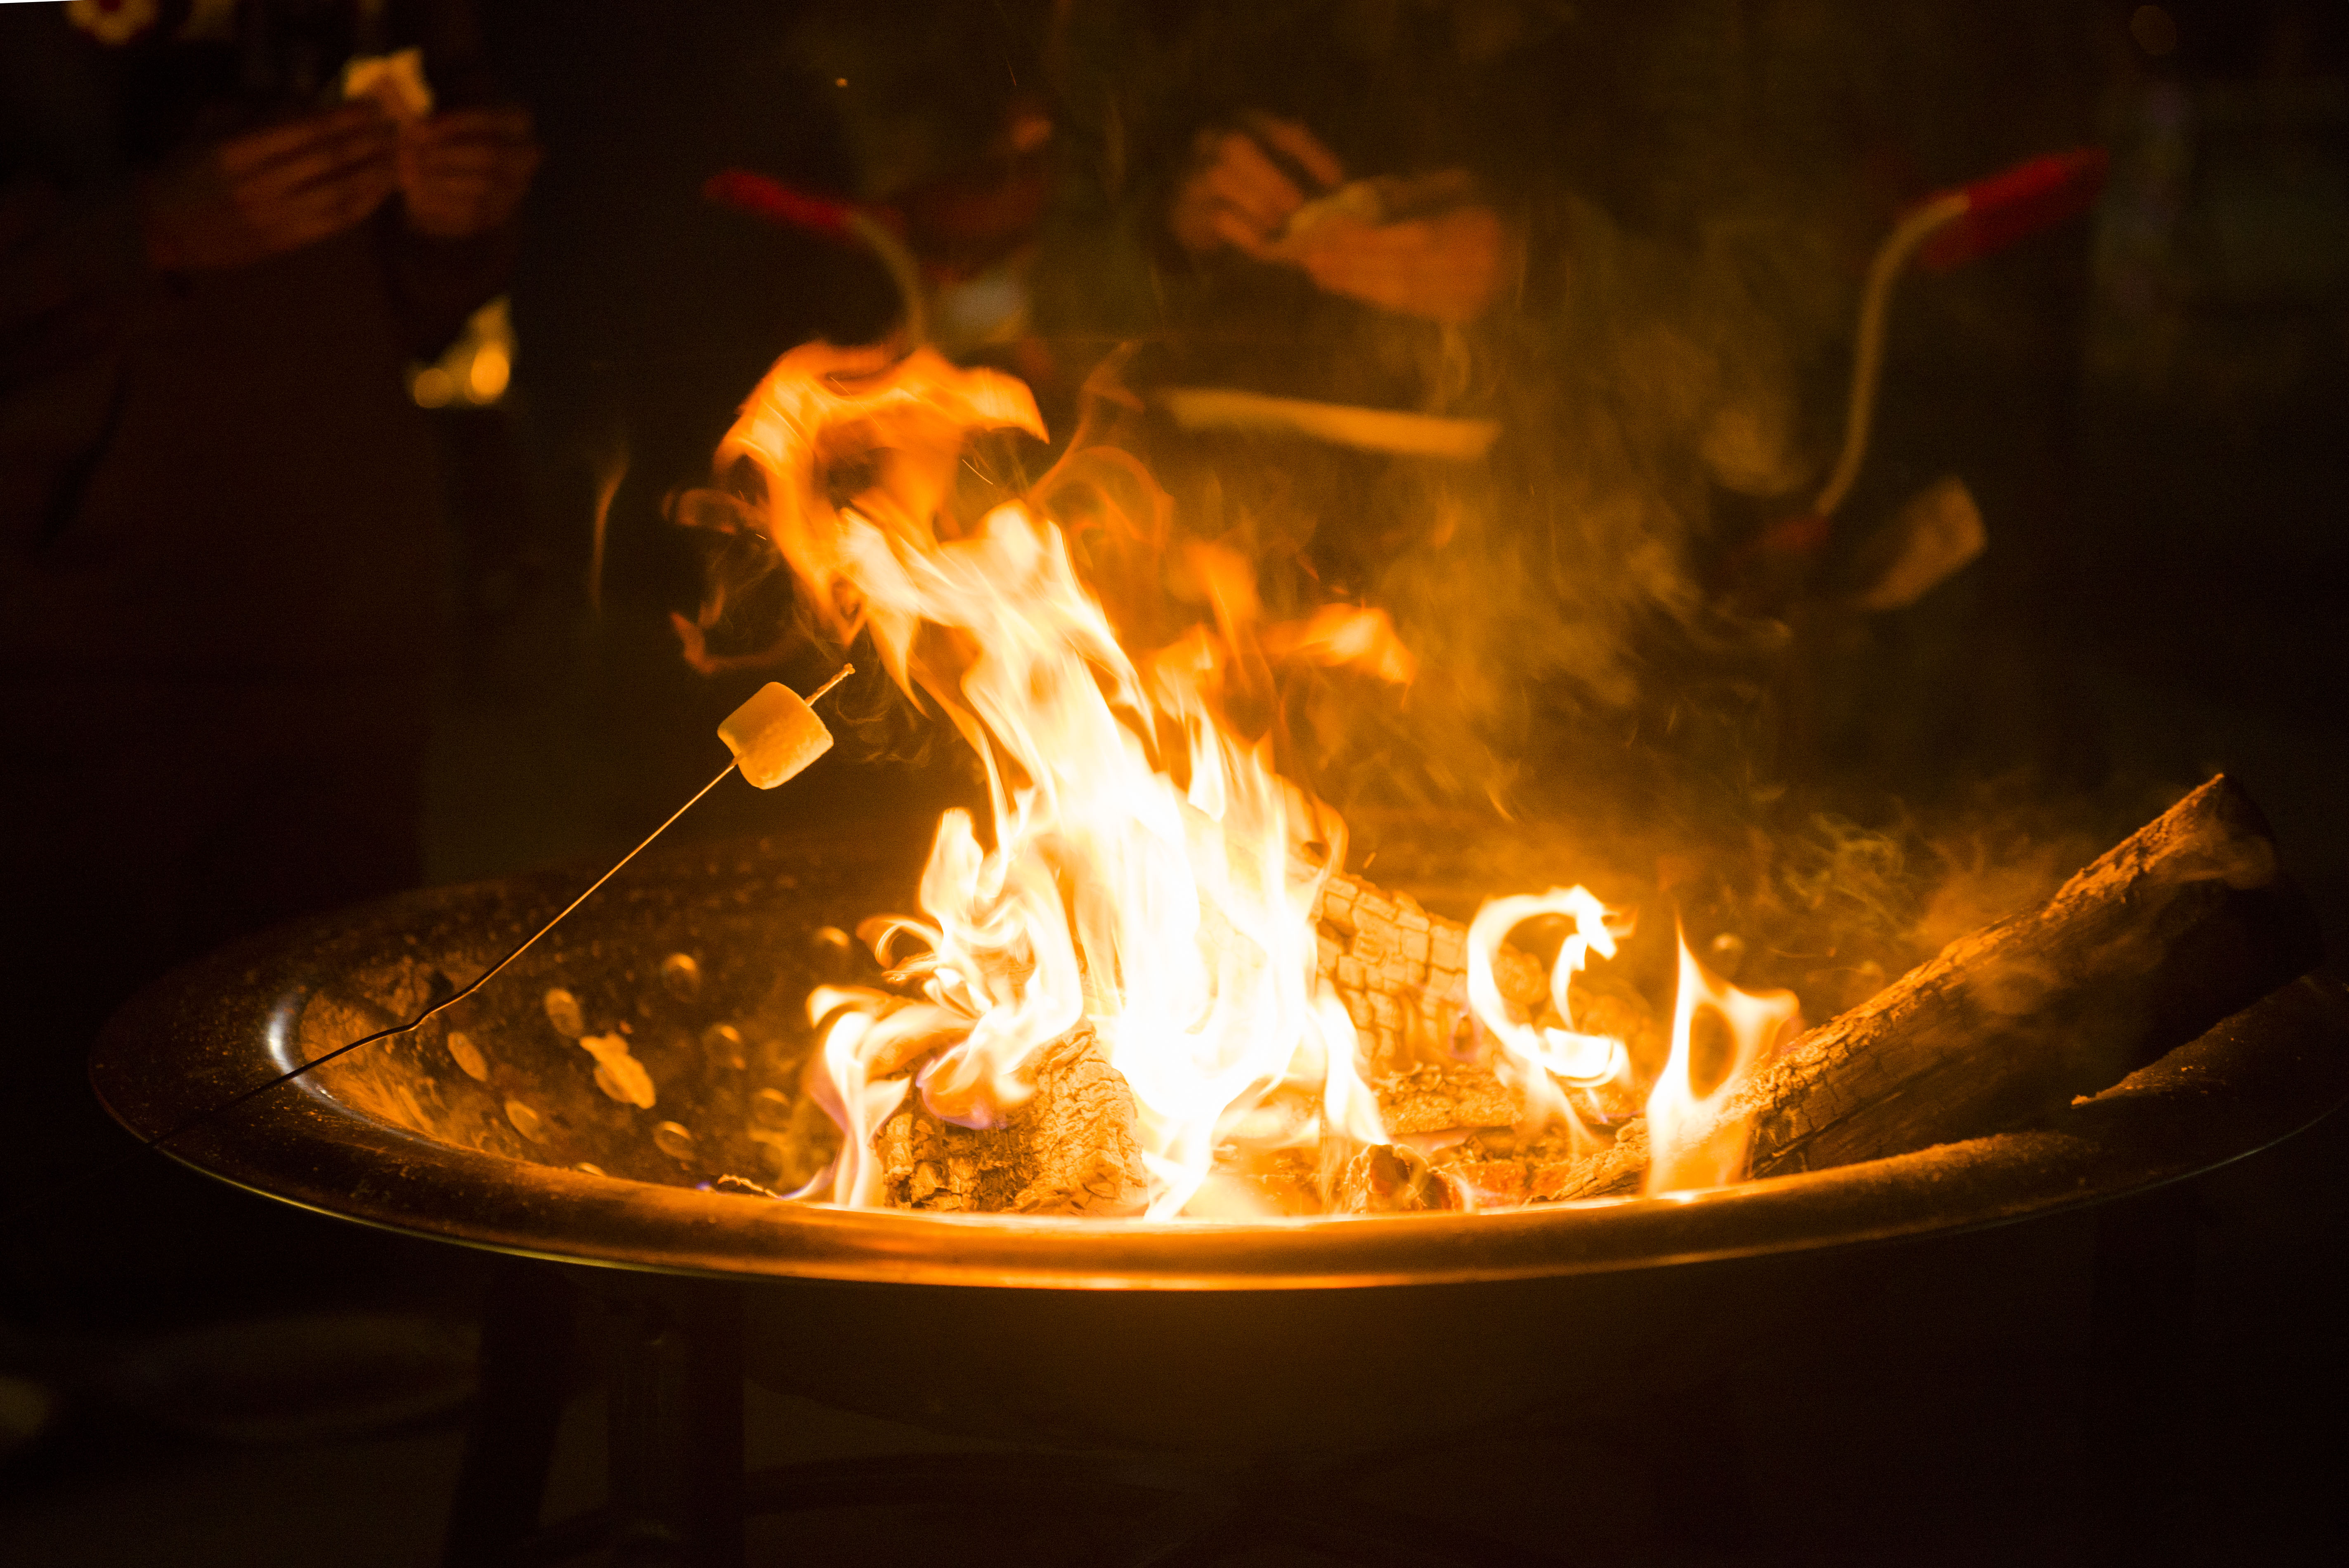 Children Roast Marshmallows Over A Fire Pit During Campout Nov 15 2014